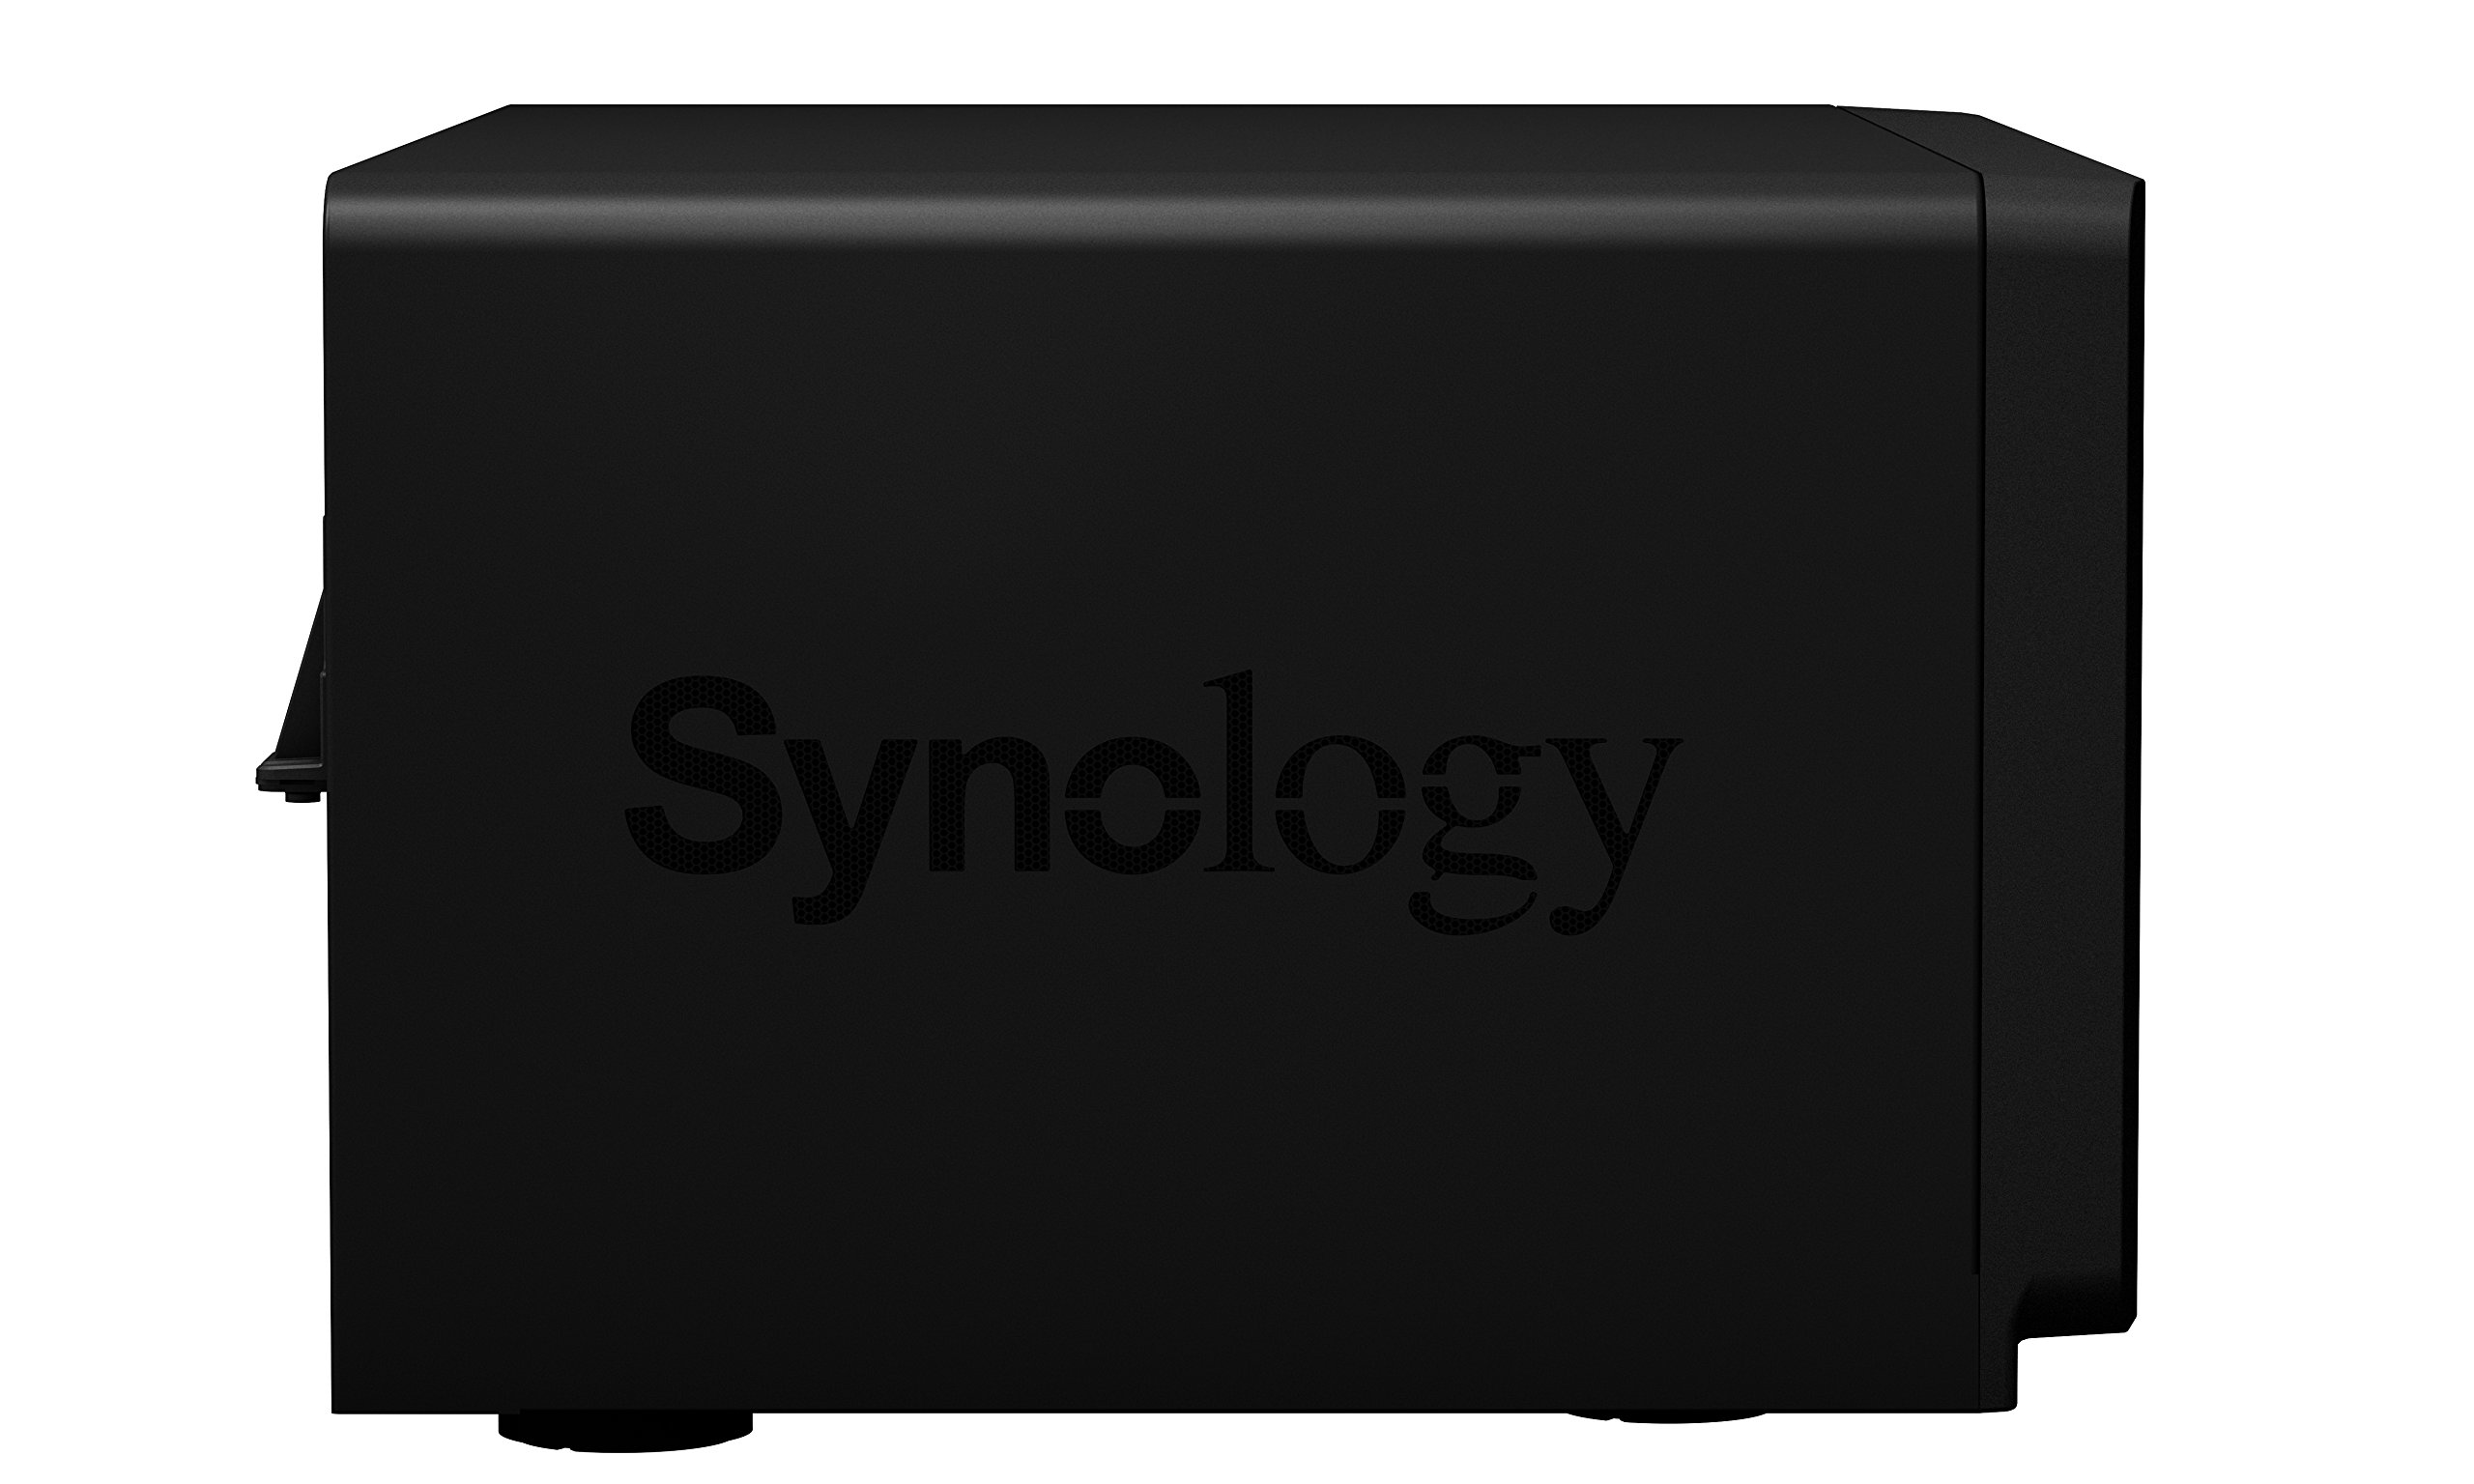 Synology 8 Bay NAS Diskstation (Diskless) (DS1819+) by Synology (Image #4)